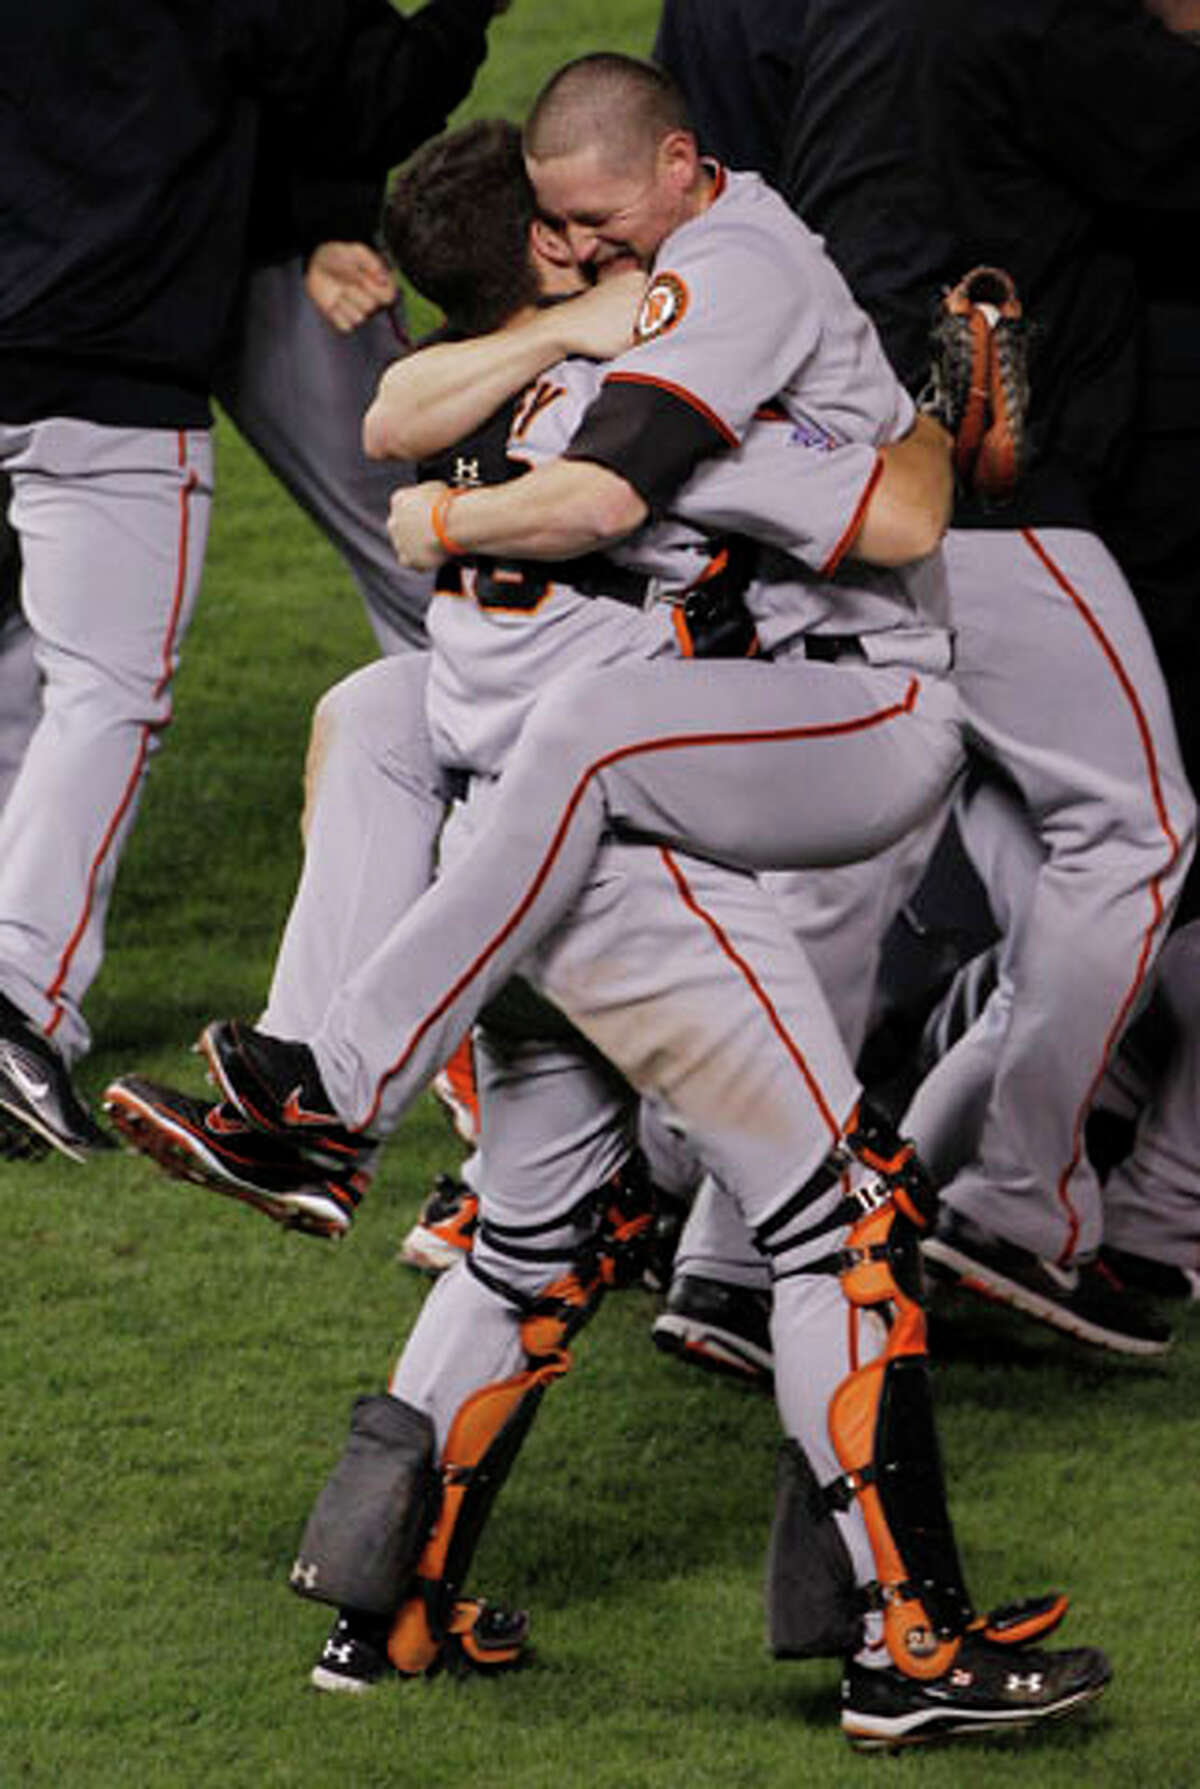 San Francisco Giants Aubrey Huff hugs with Buster Posey, left, after winning the World Series. AP Photo/Mark Humphrey